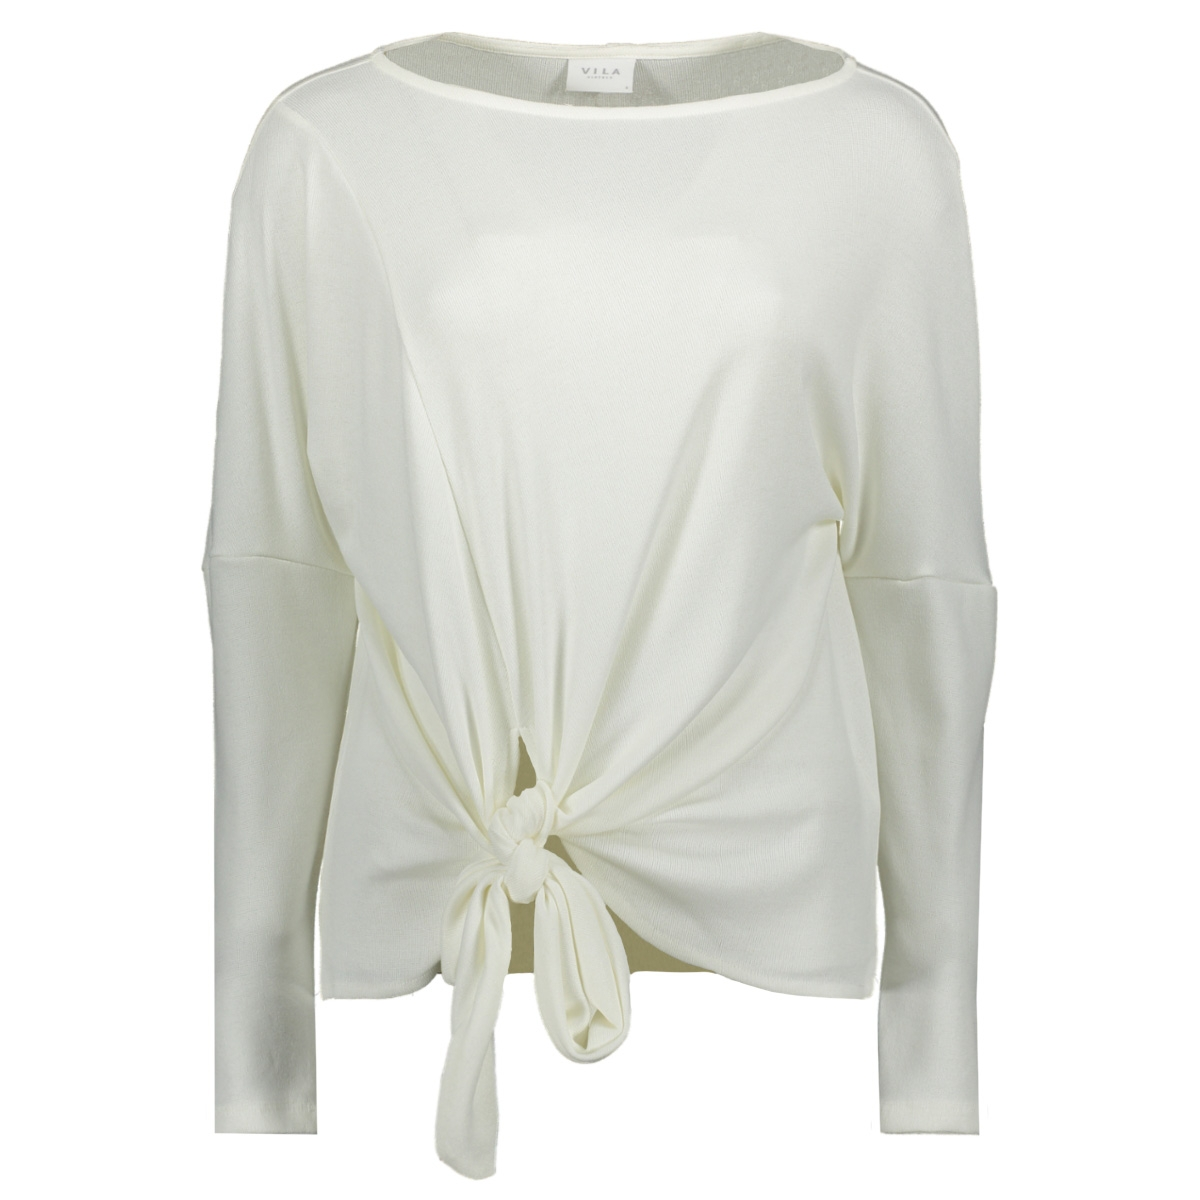 vinamina l/s t-shirt/1 14058747 vila trui cloud dancer